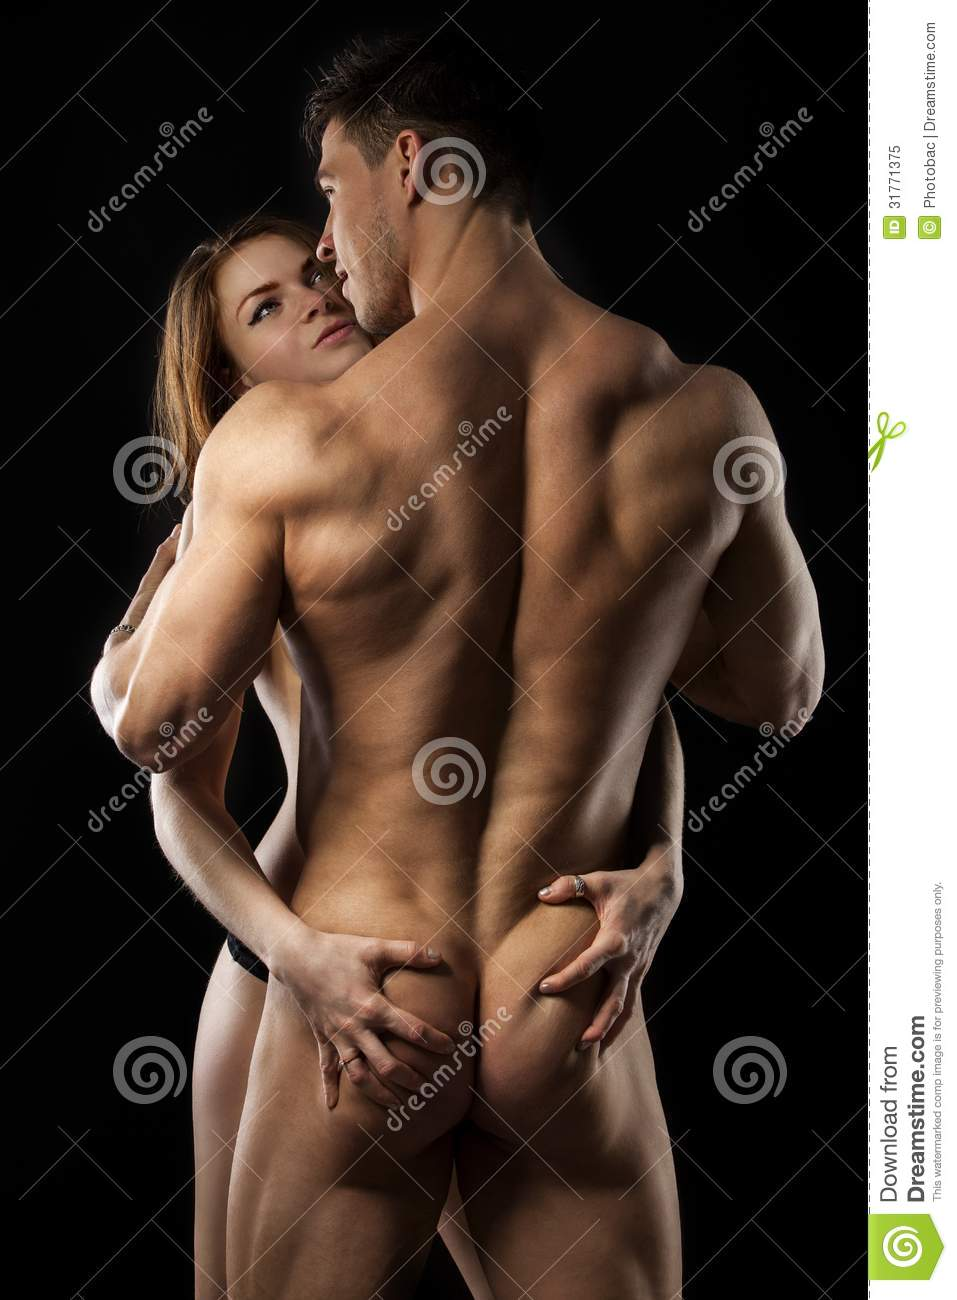 Nude Athletic Couples photo 23